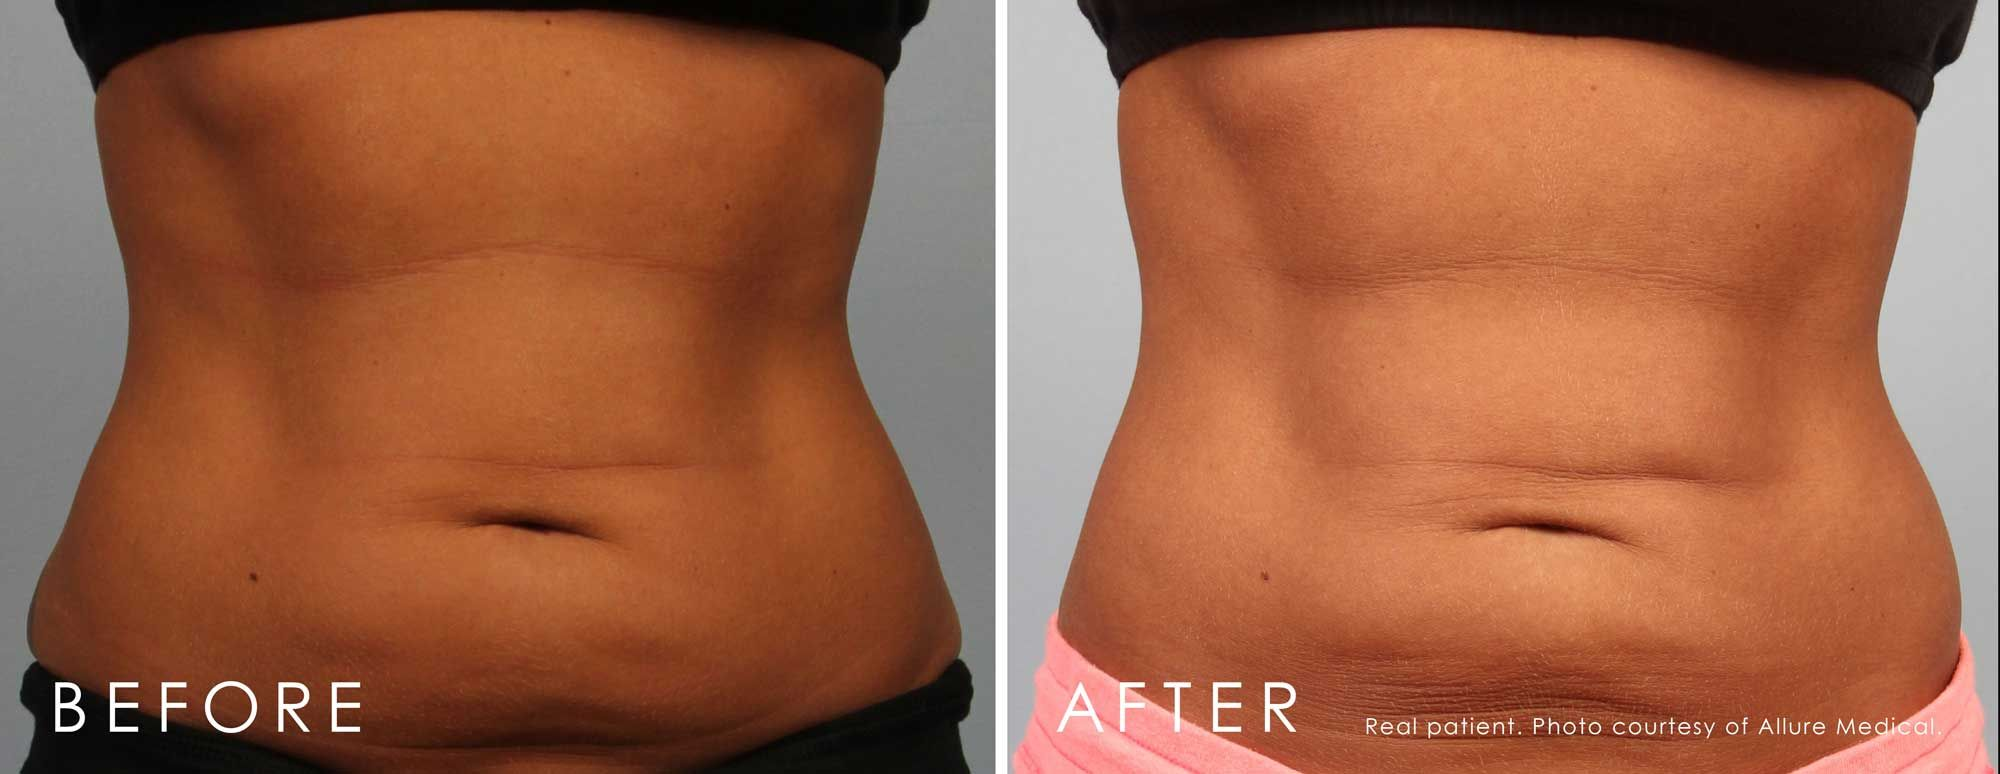 Before and After CoolSculpting® treatment #3